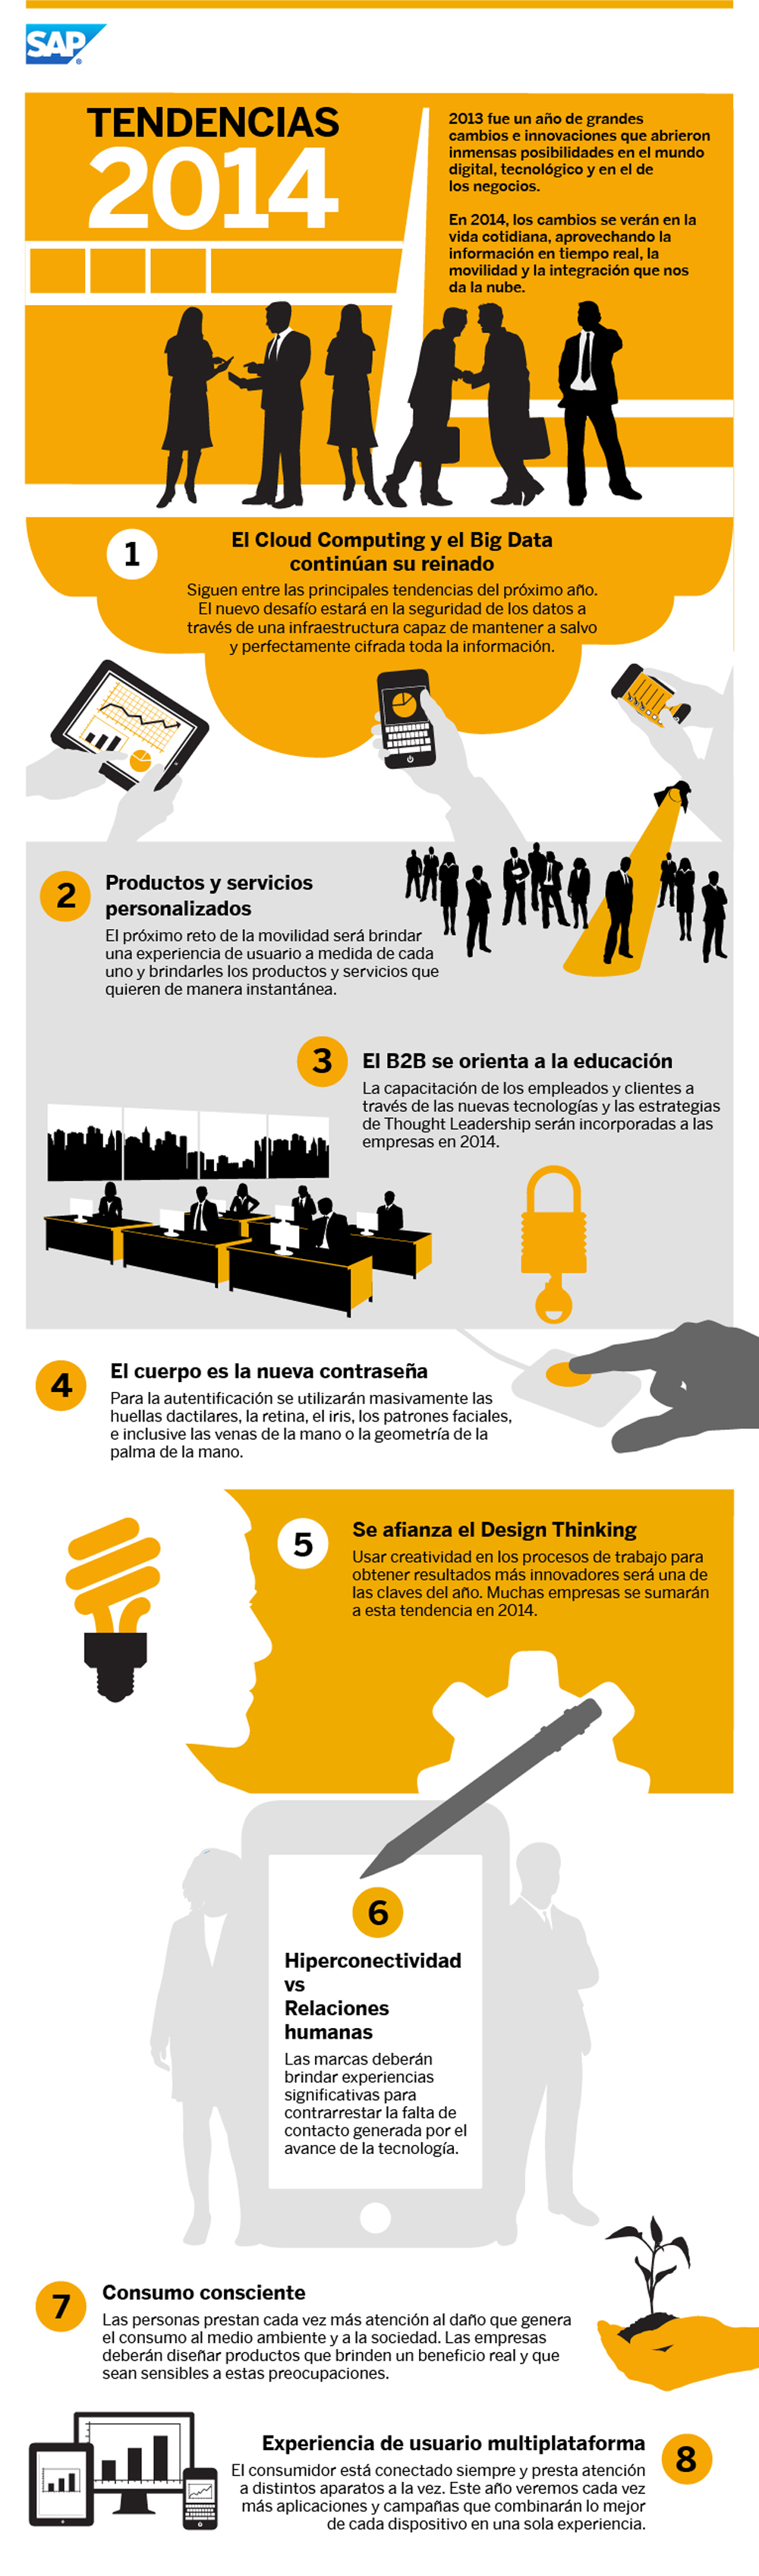 Infografia_SAP_Tendencias-2014